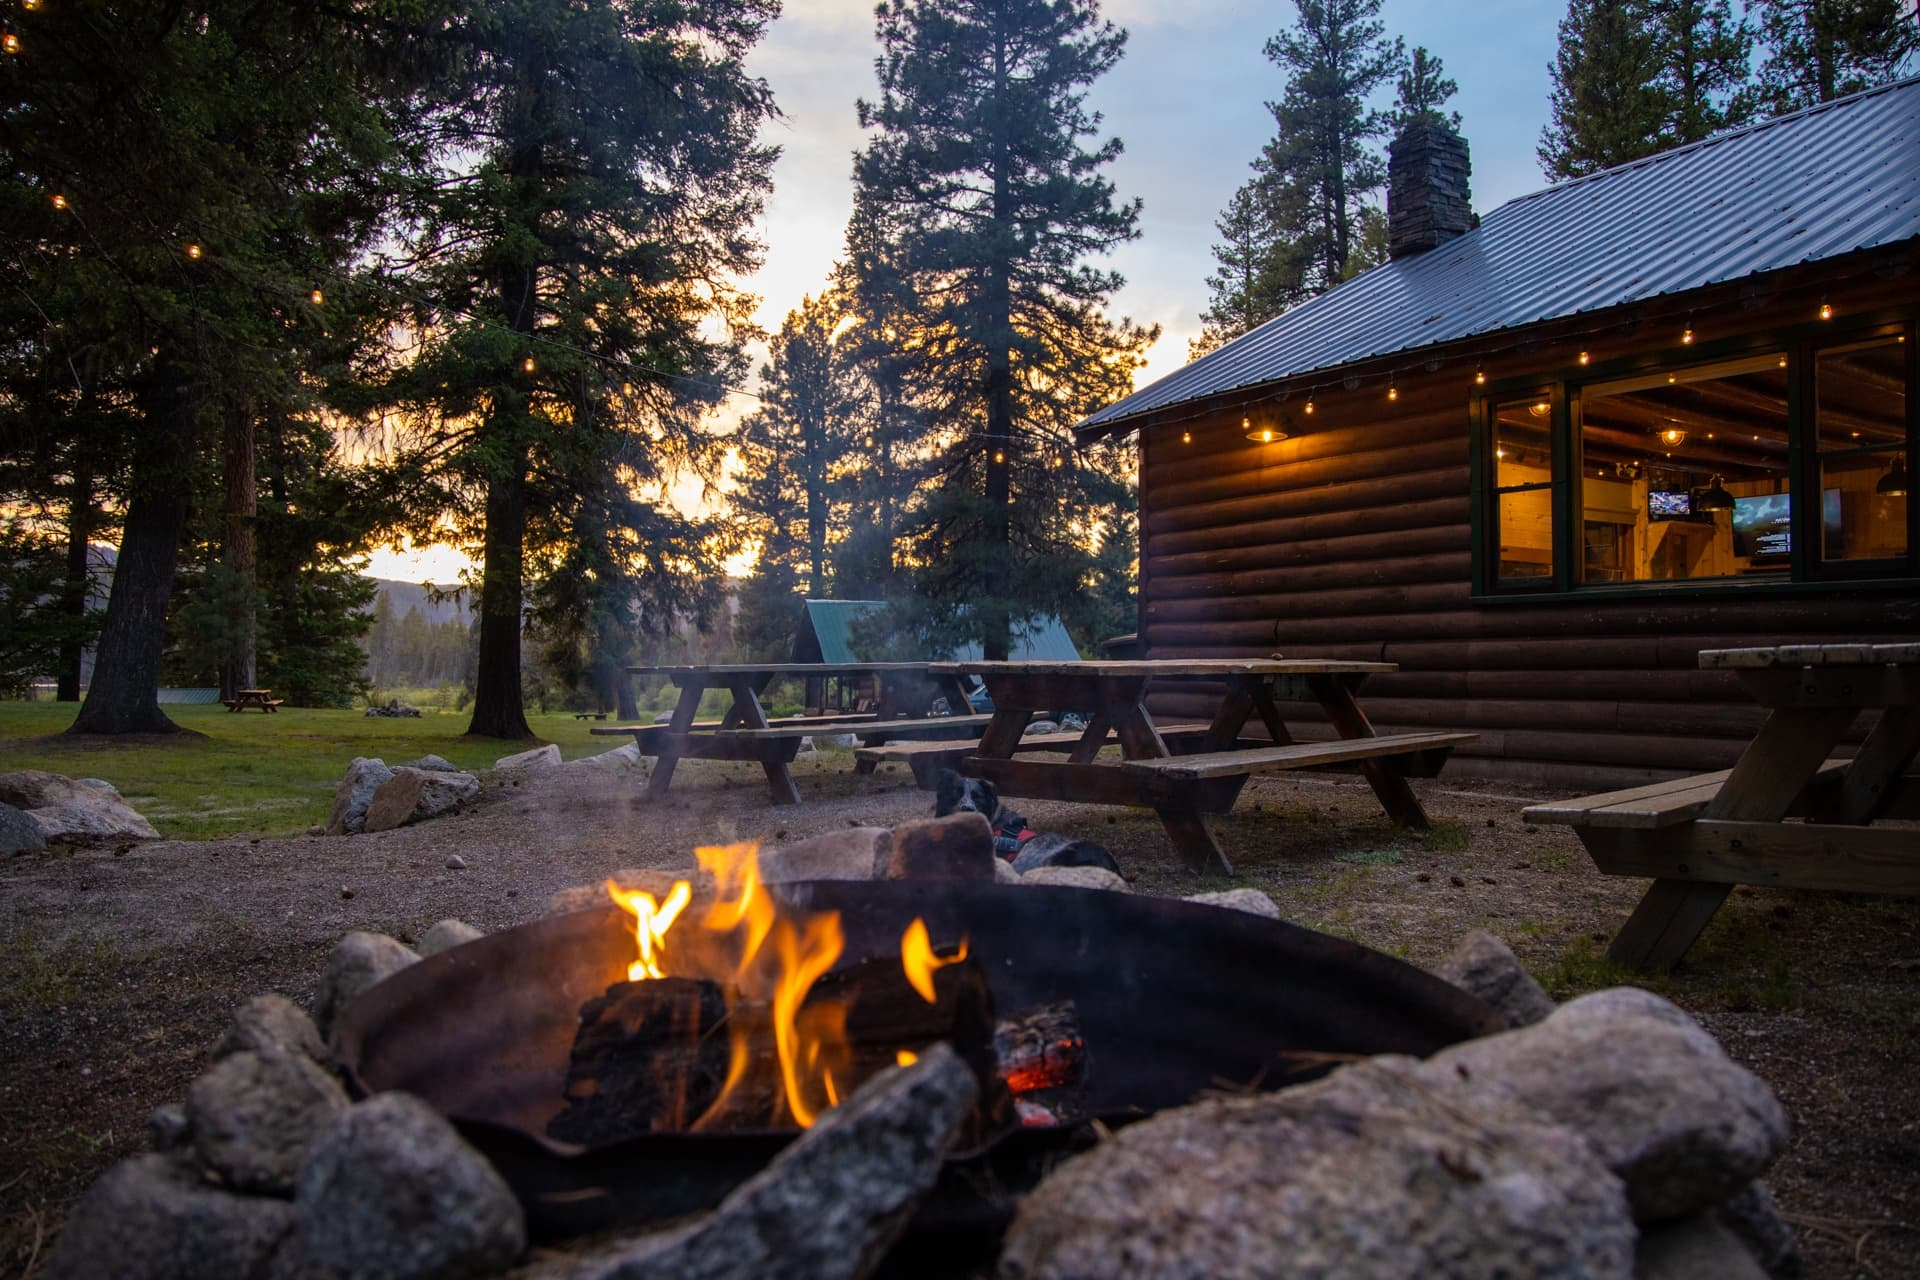 Warm Lake Lodge // Hot springs, hiking, off-roading, biking, and more. Explore the best outdoor recreation in Cascade with this 4-day Cascade Idaho itinerary.